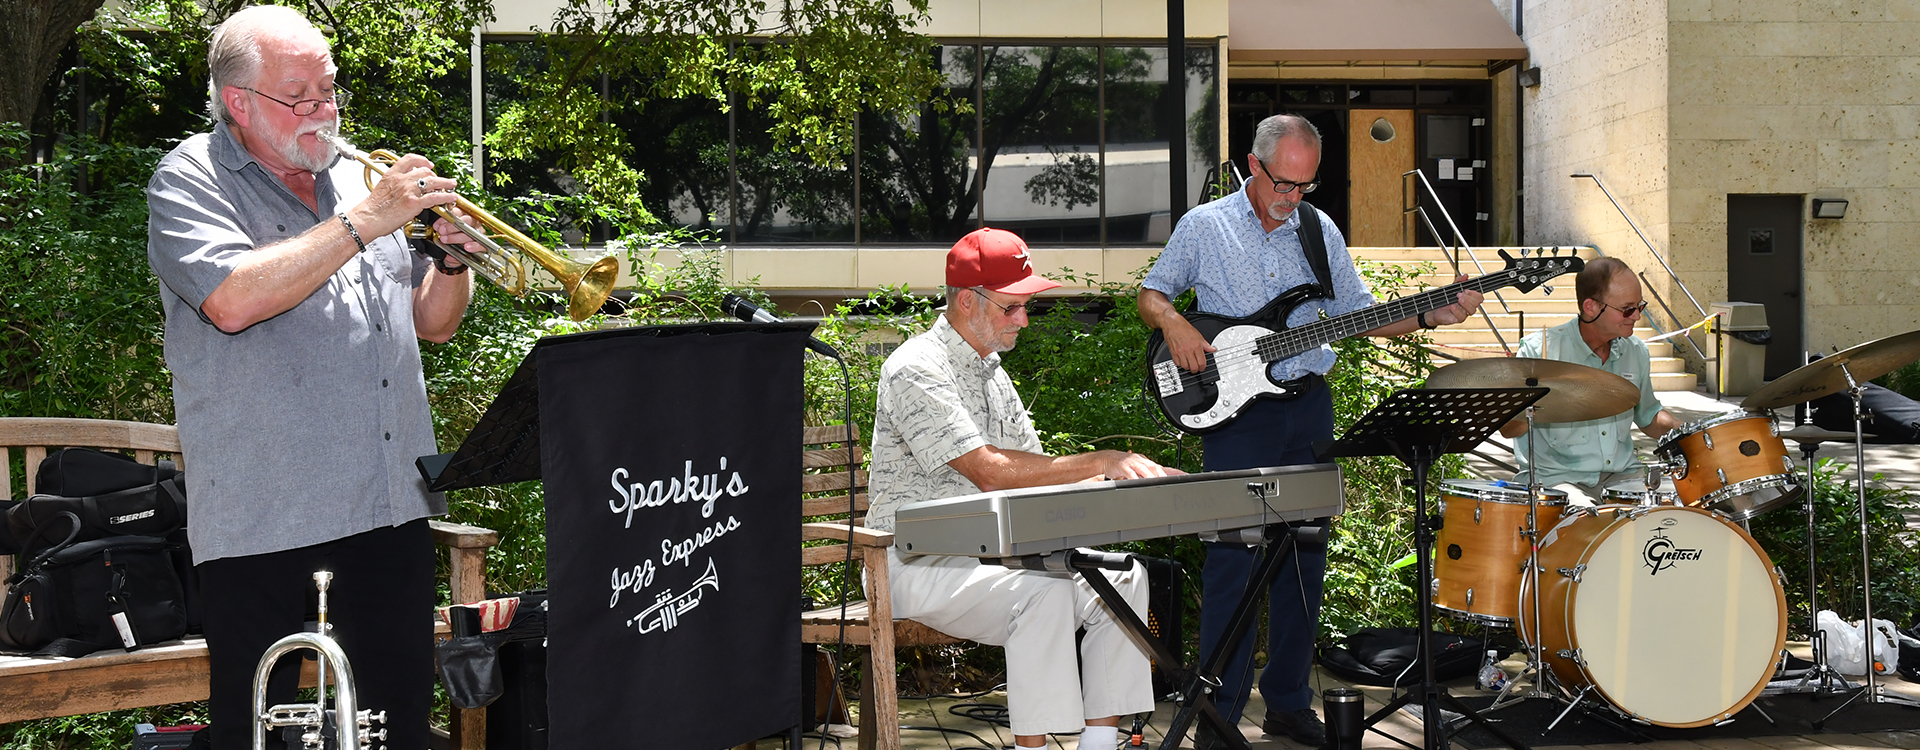 Sparky's Jazz Express at Arts & Resilience